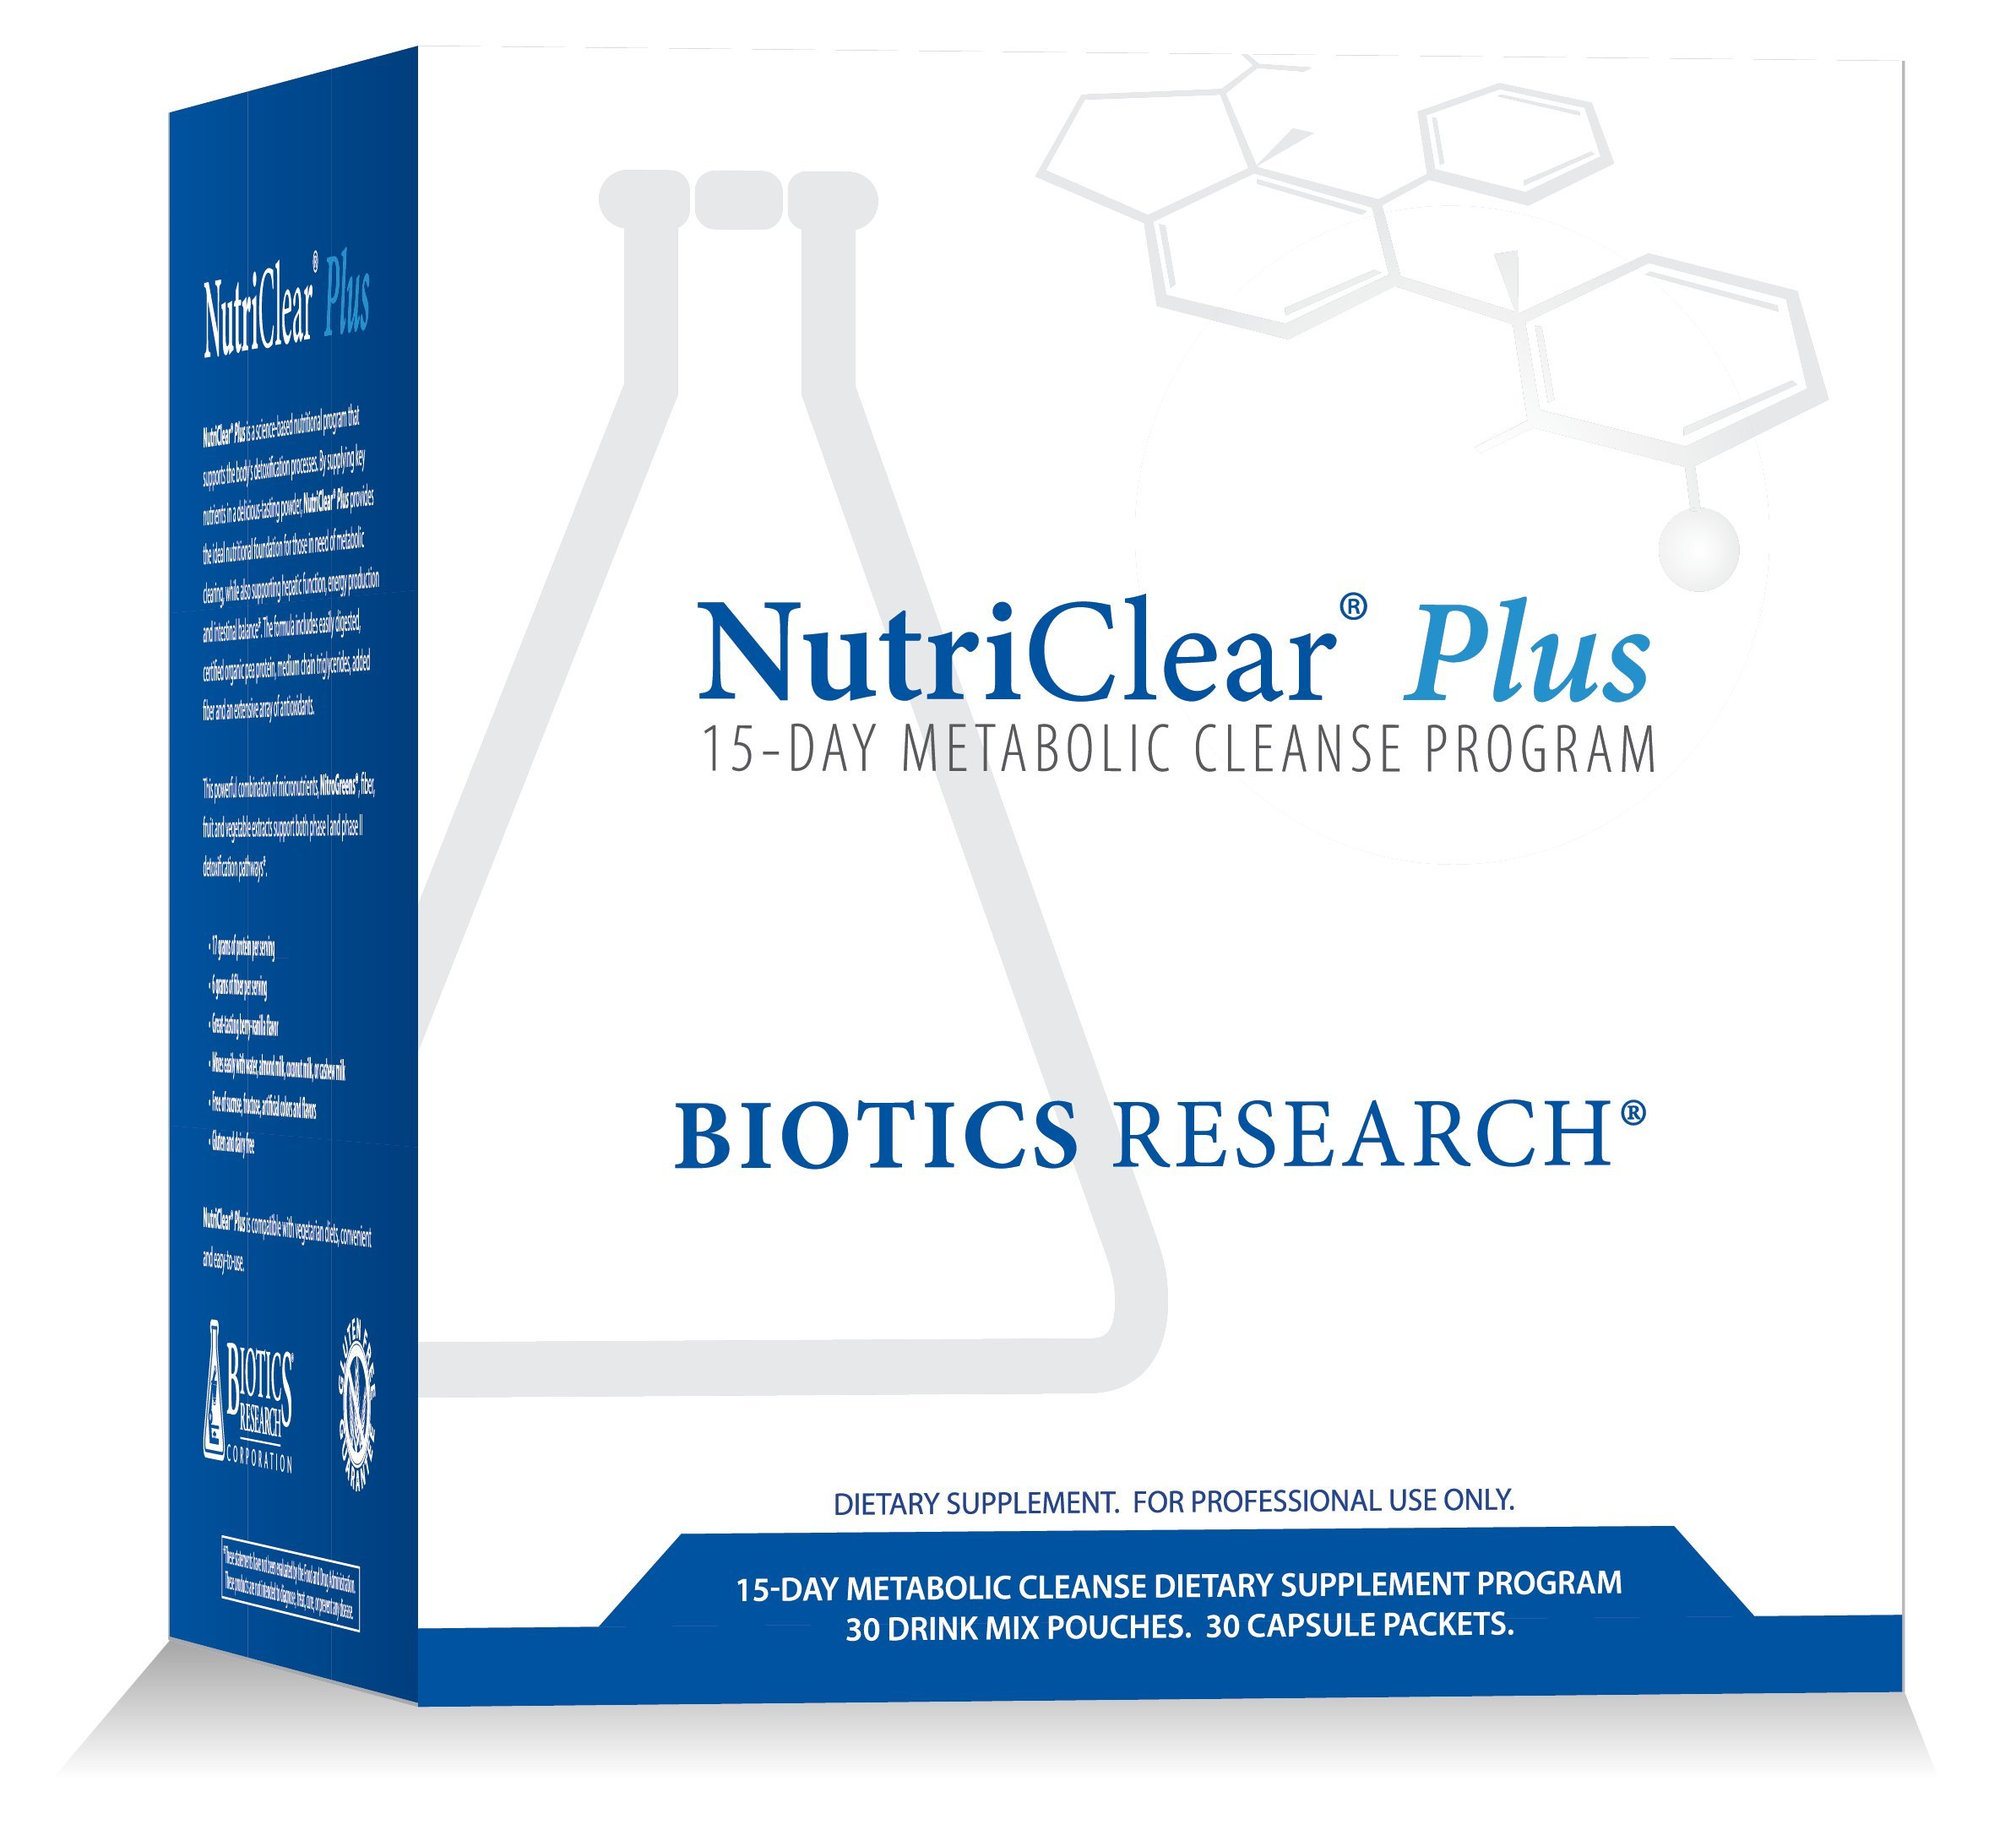 Biotics Research NutriClear® Plus—Detox Program, Convenient. Single Pack Serving. Easy-to-Follow Metabolic Cleanse Program. 17 g Organic Pea Protein/Serving, 30 Packs. Shaker Bottle.